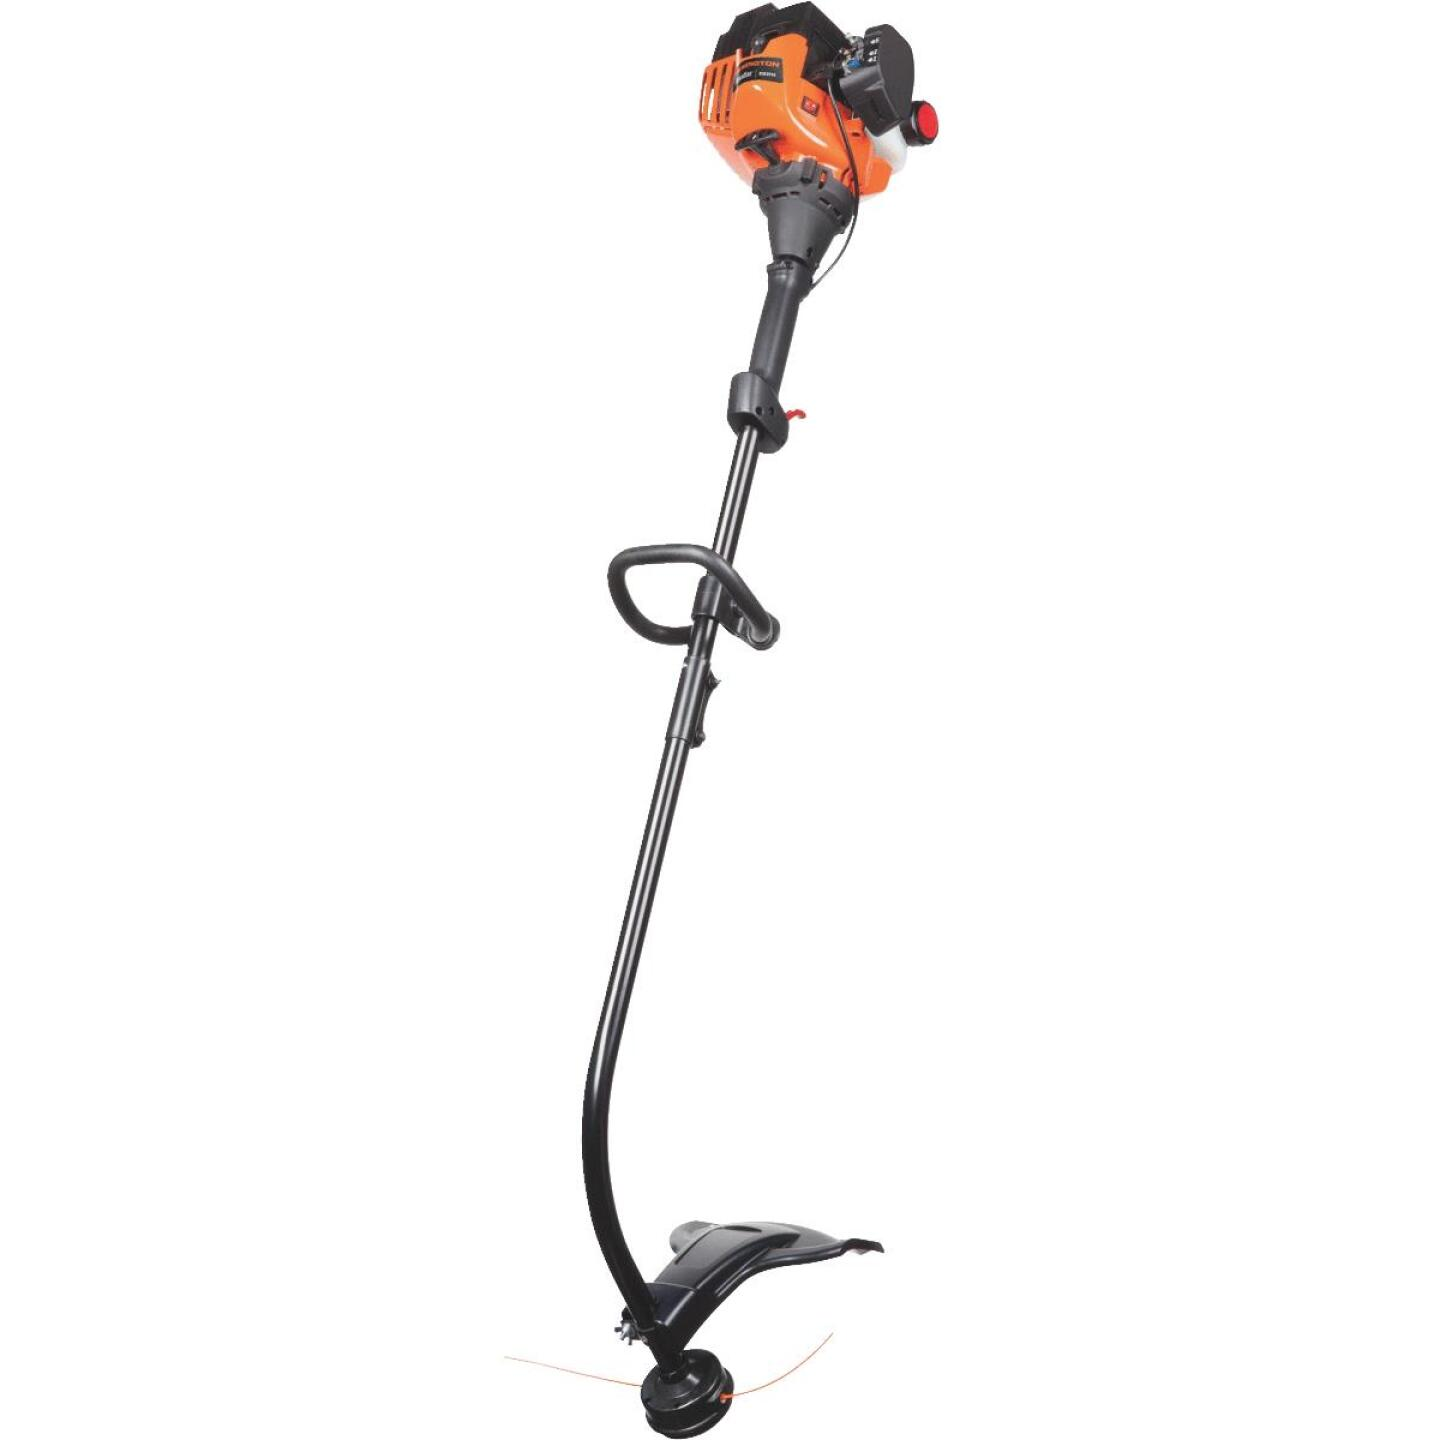 Remington RM2530 Rustler 25cc 2-Cycle 16 In. Curved Shaft Gas Trimmer Image 1